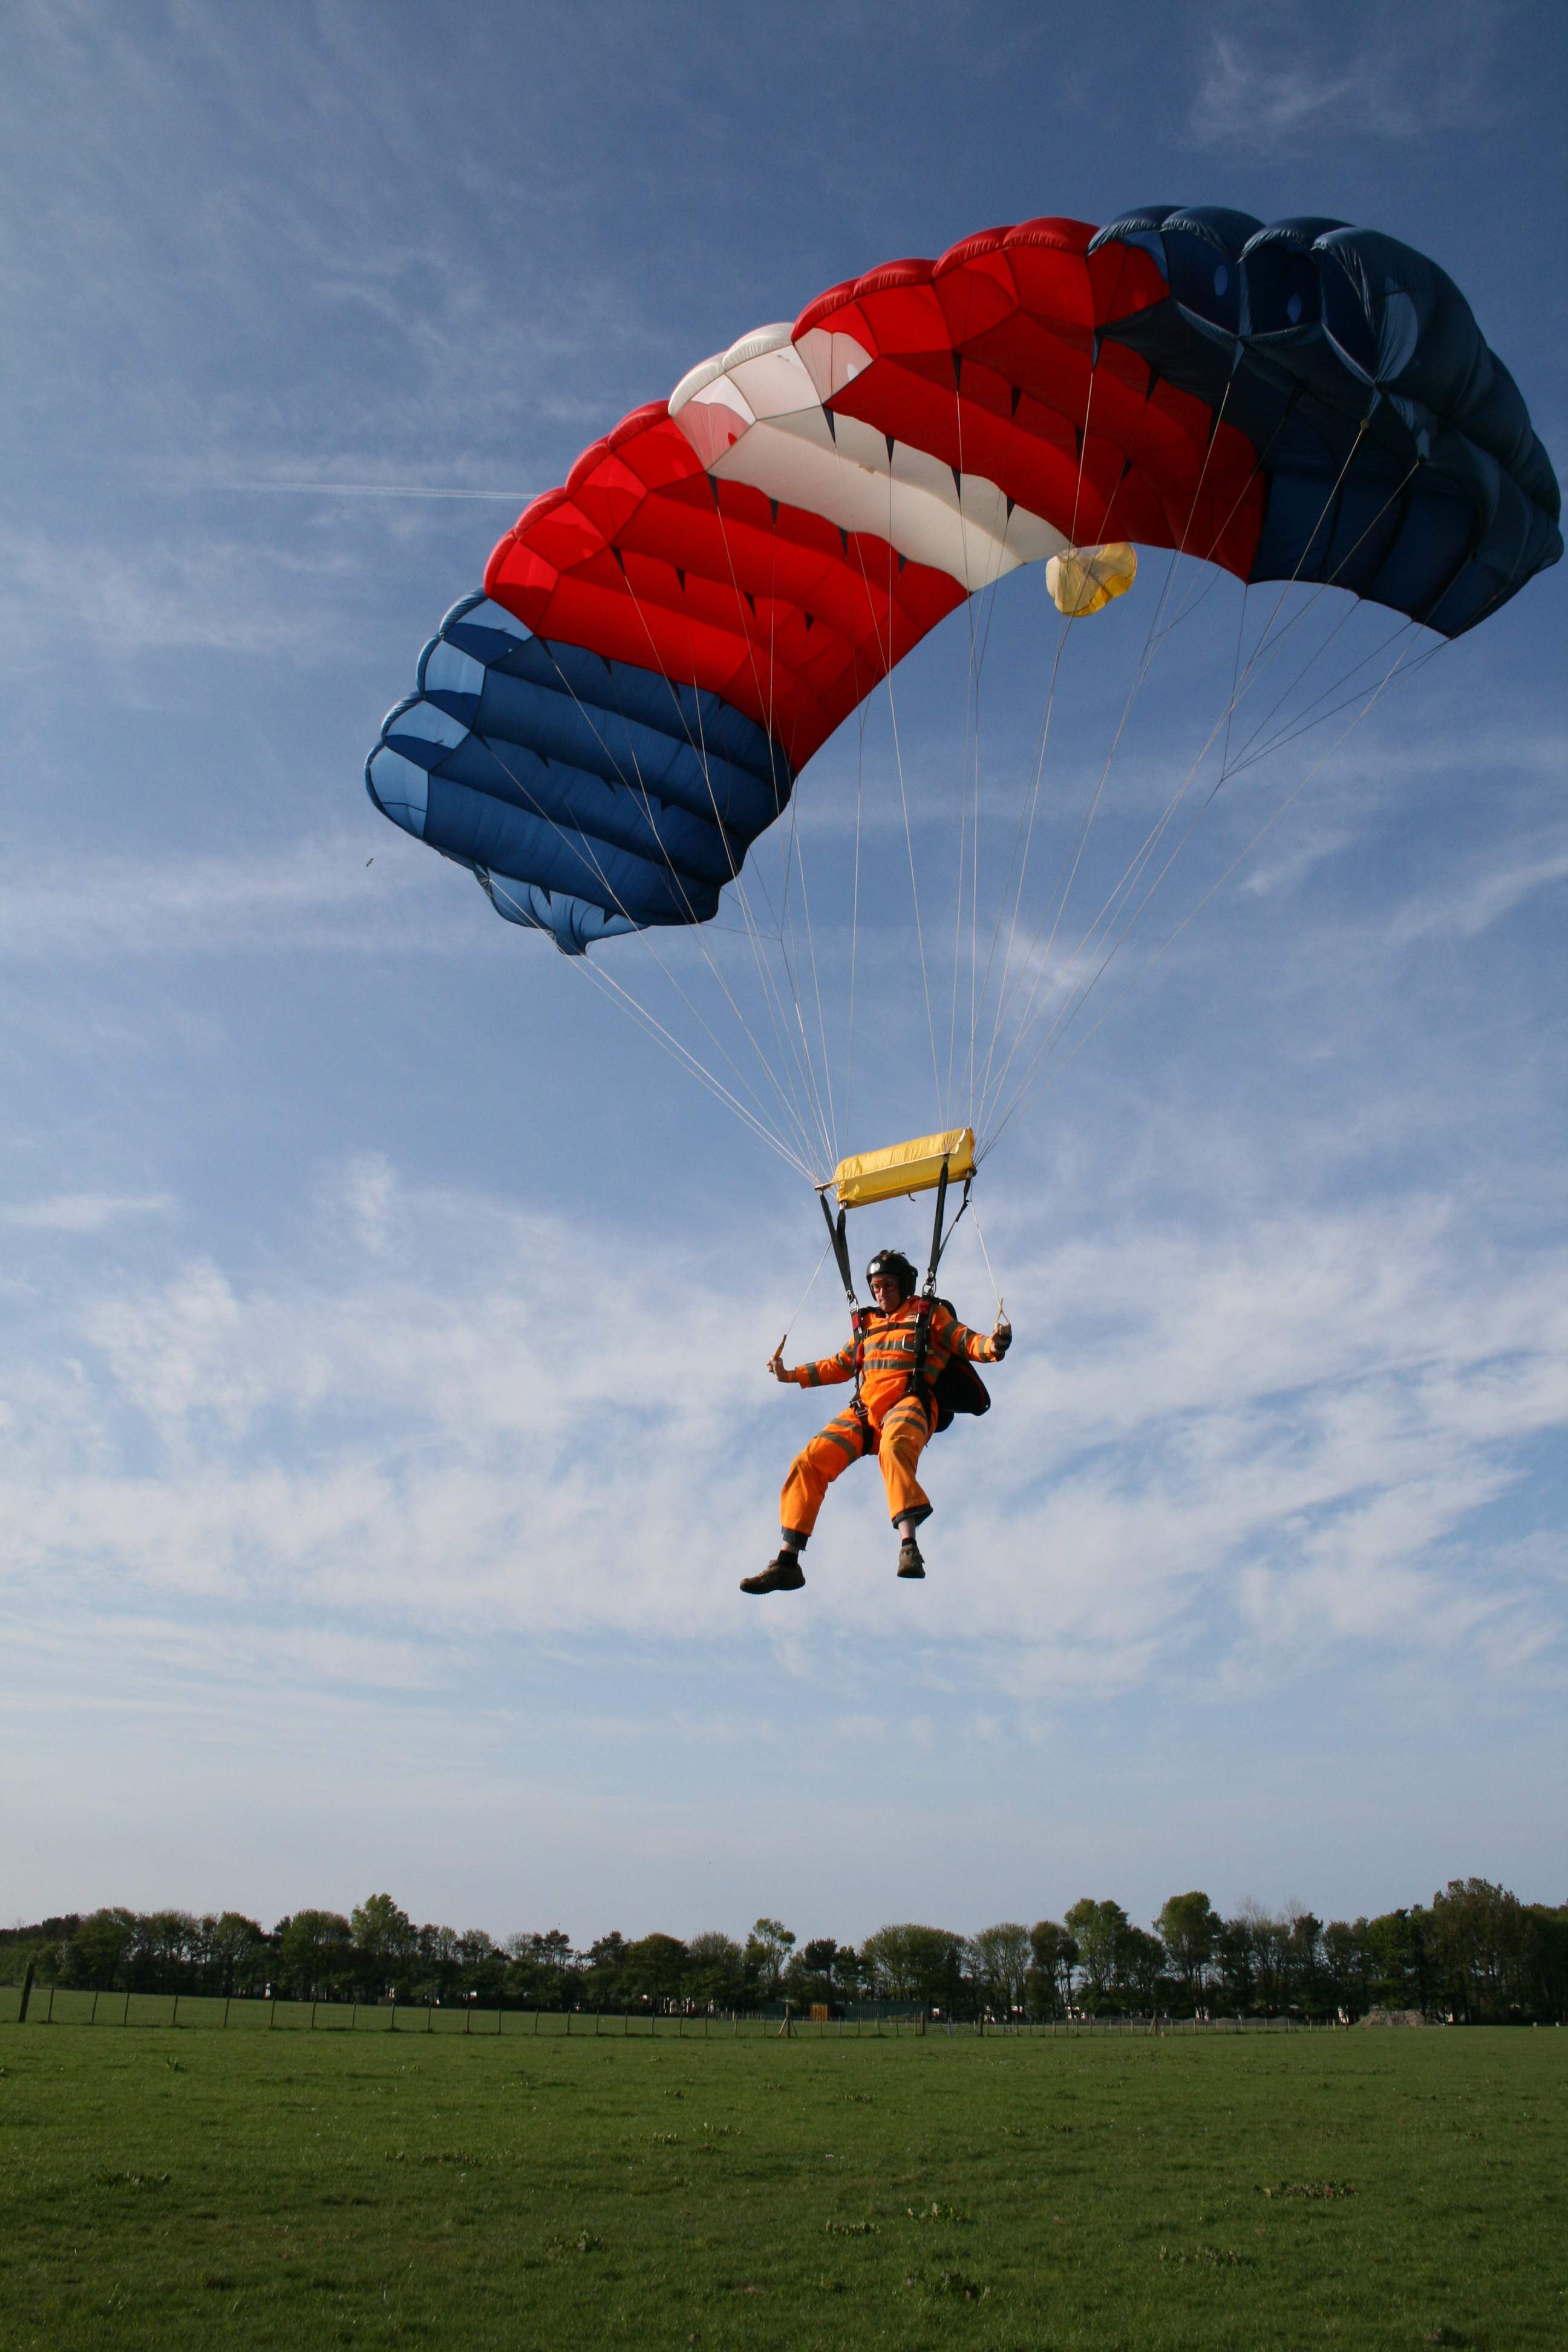 sky diving experience Give someone a unique gift experience that they will treasure skydive gift vouchers available for all skydiving courses and indoor skydiving experiences at 24.